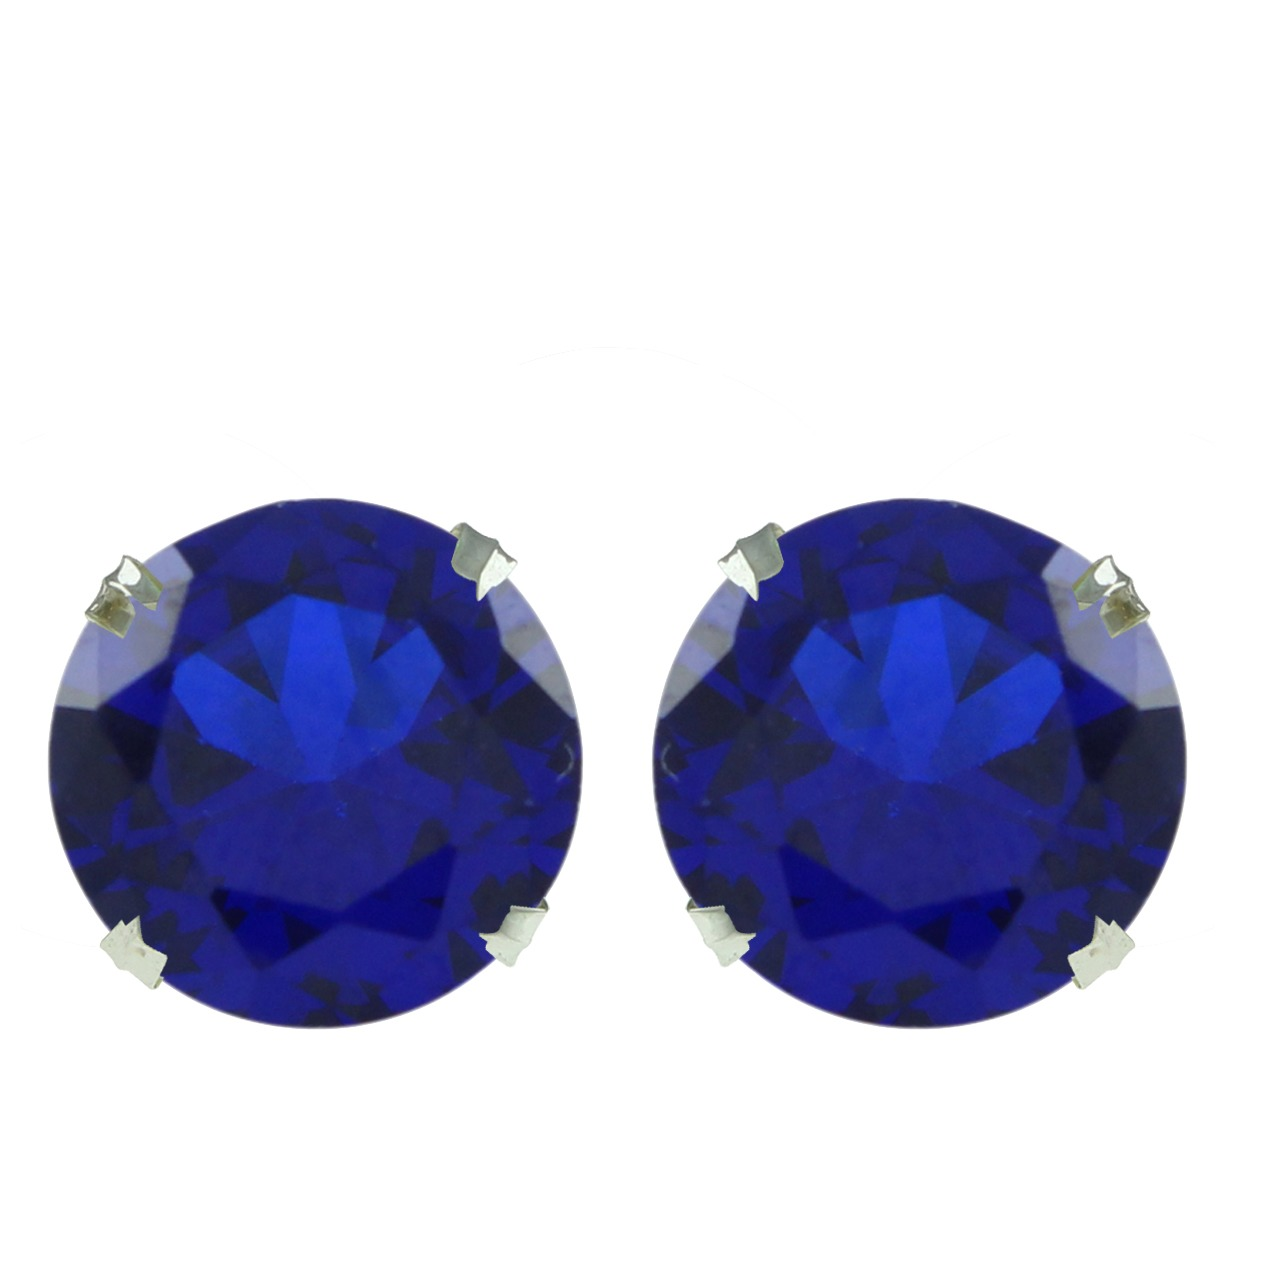 8mm Round Cut Blue Sapphire 10k White Gold Solitaire Stud Earrings nanibon кардиган